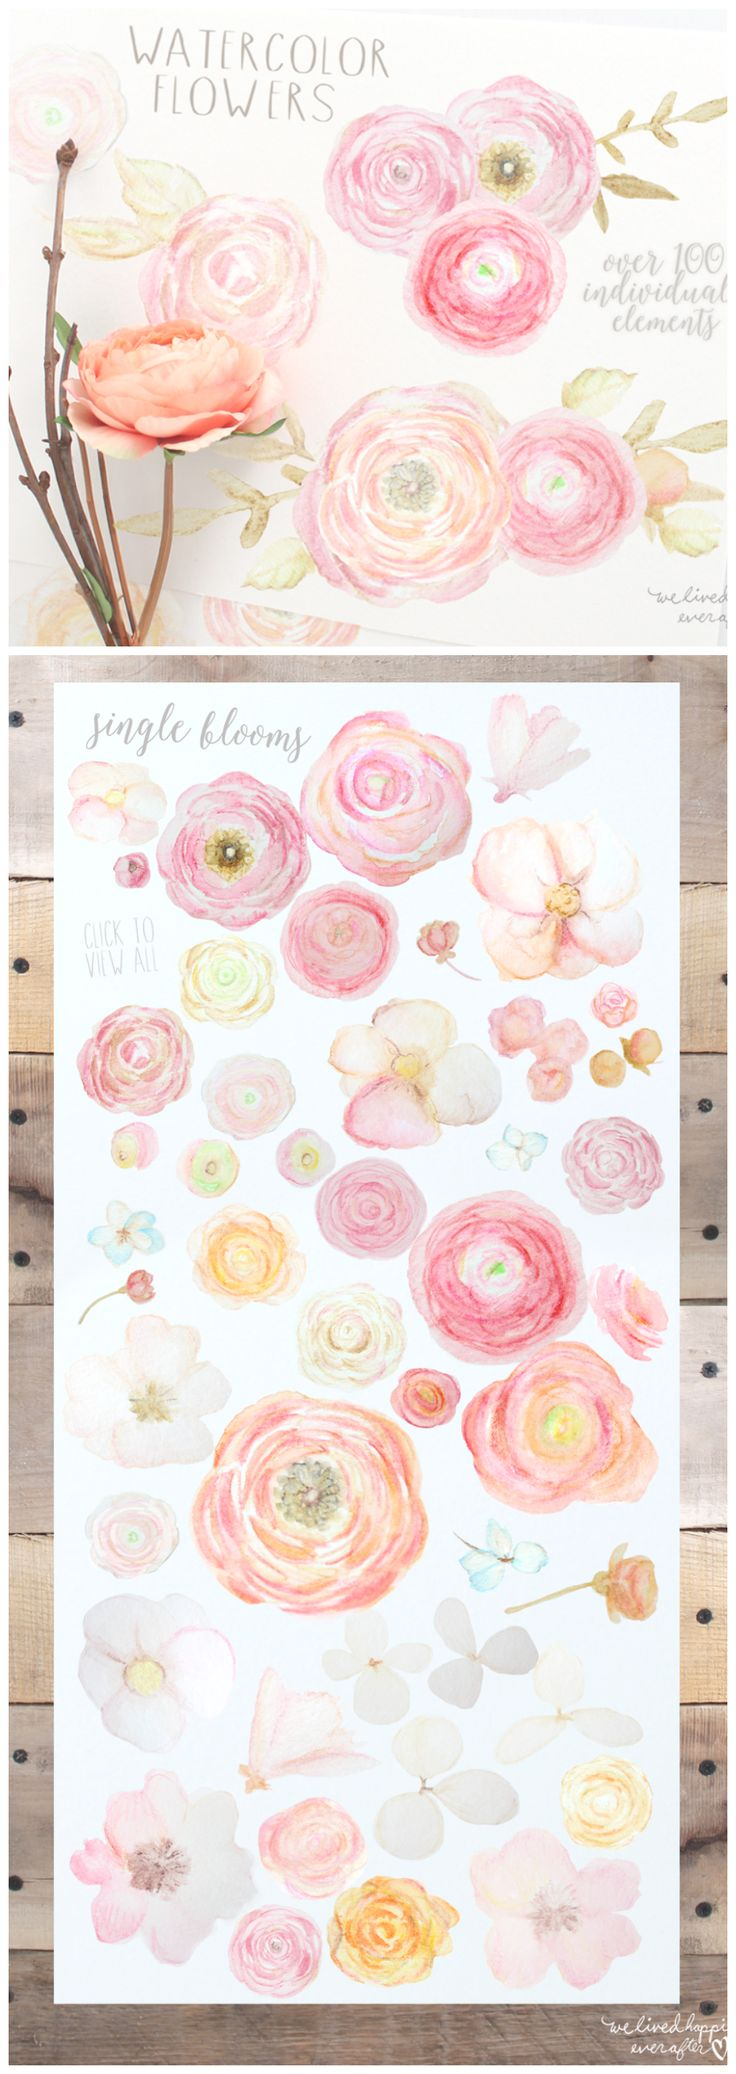 Gorgeous Watercolor Floral Graphics!